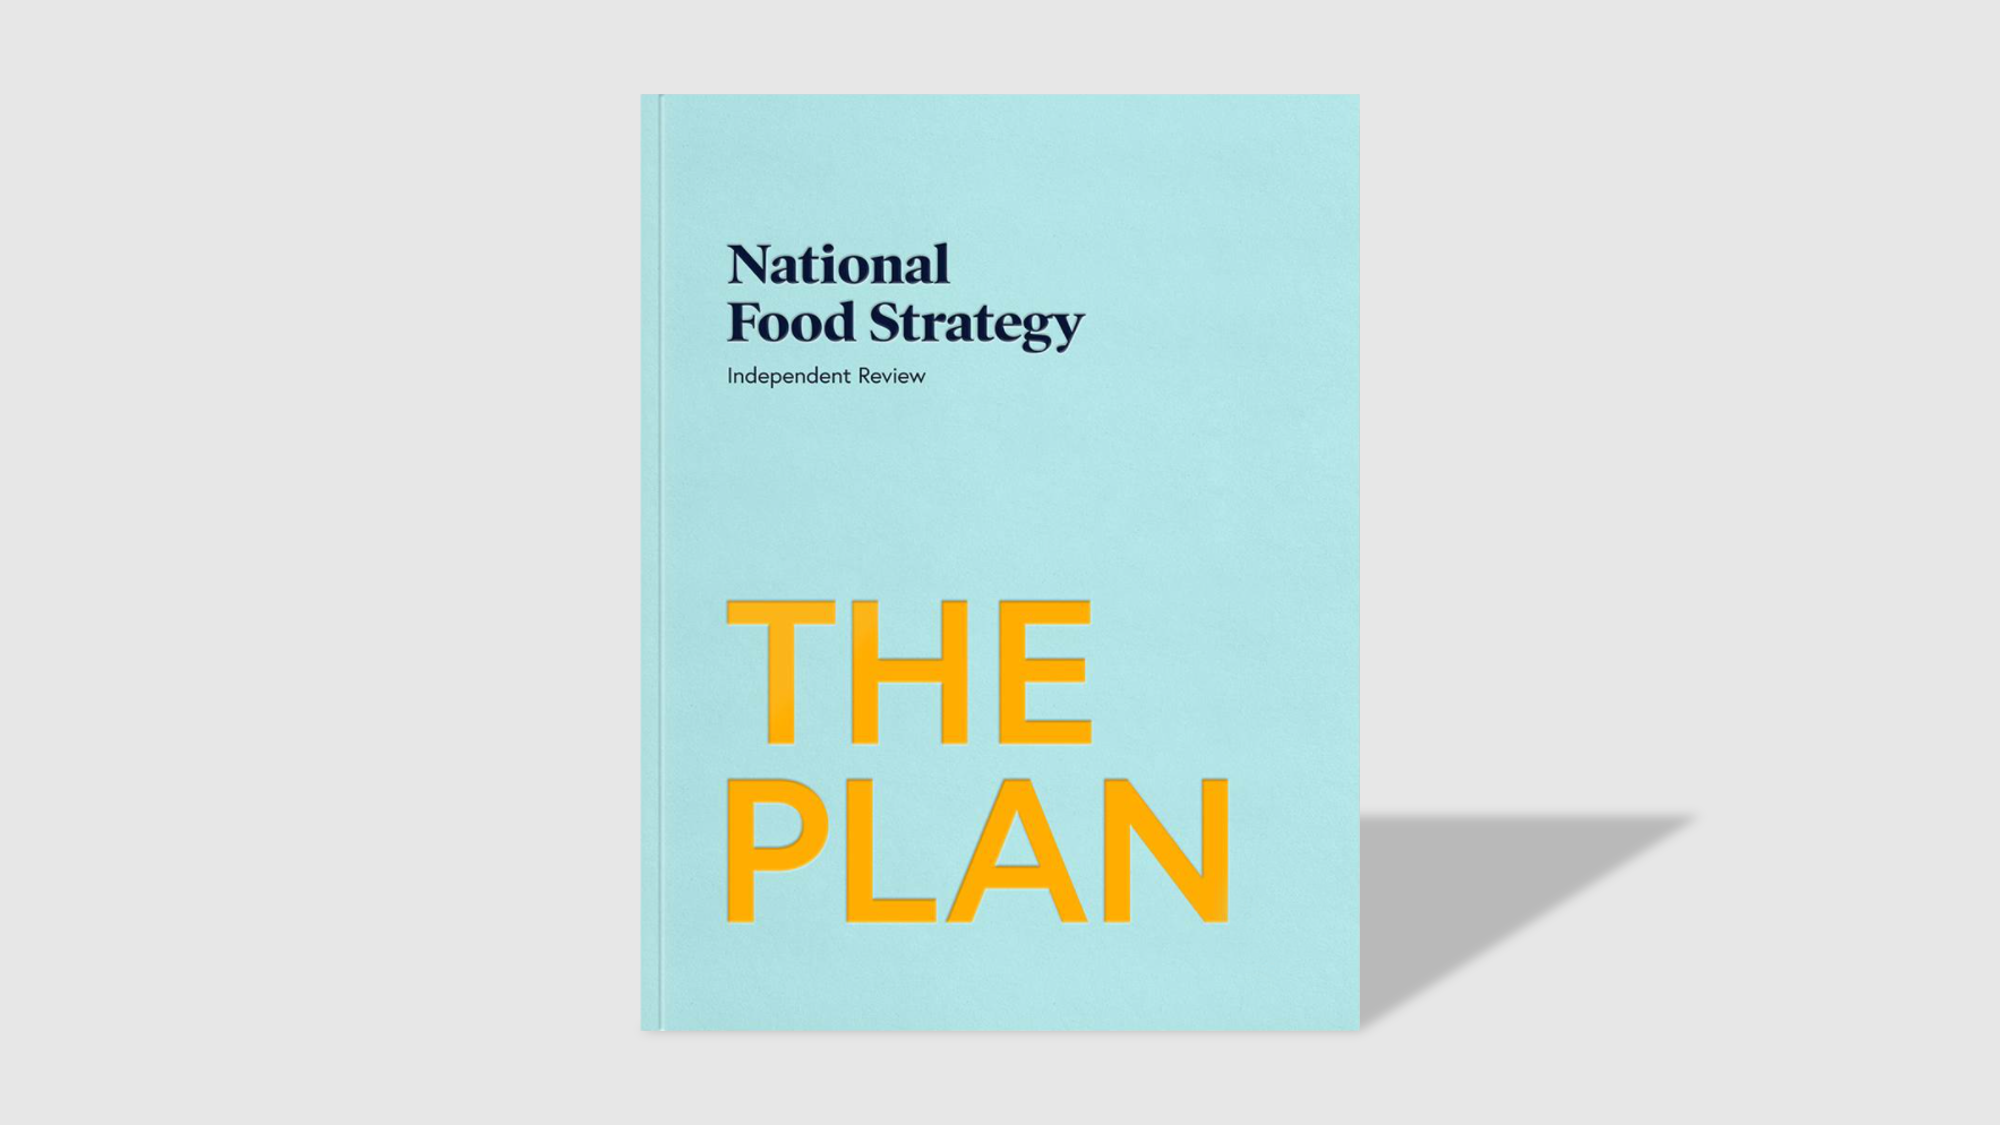 www.nationalfoodstrategy.org